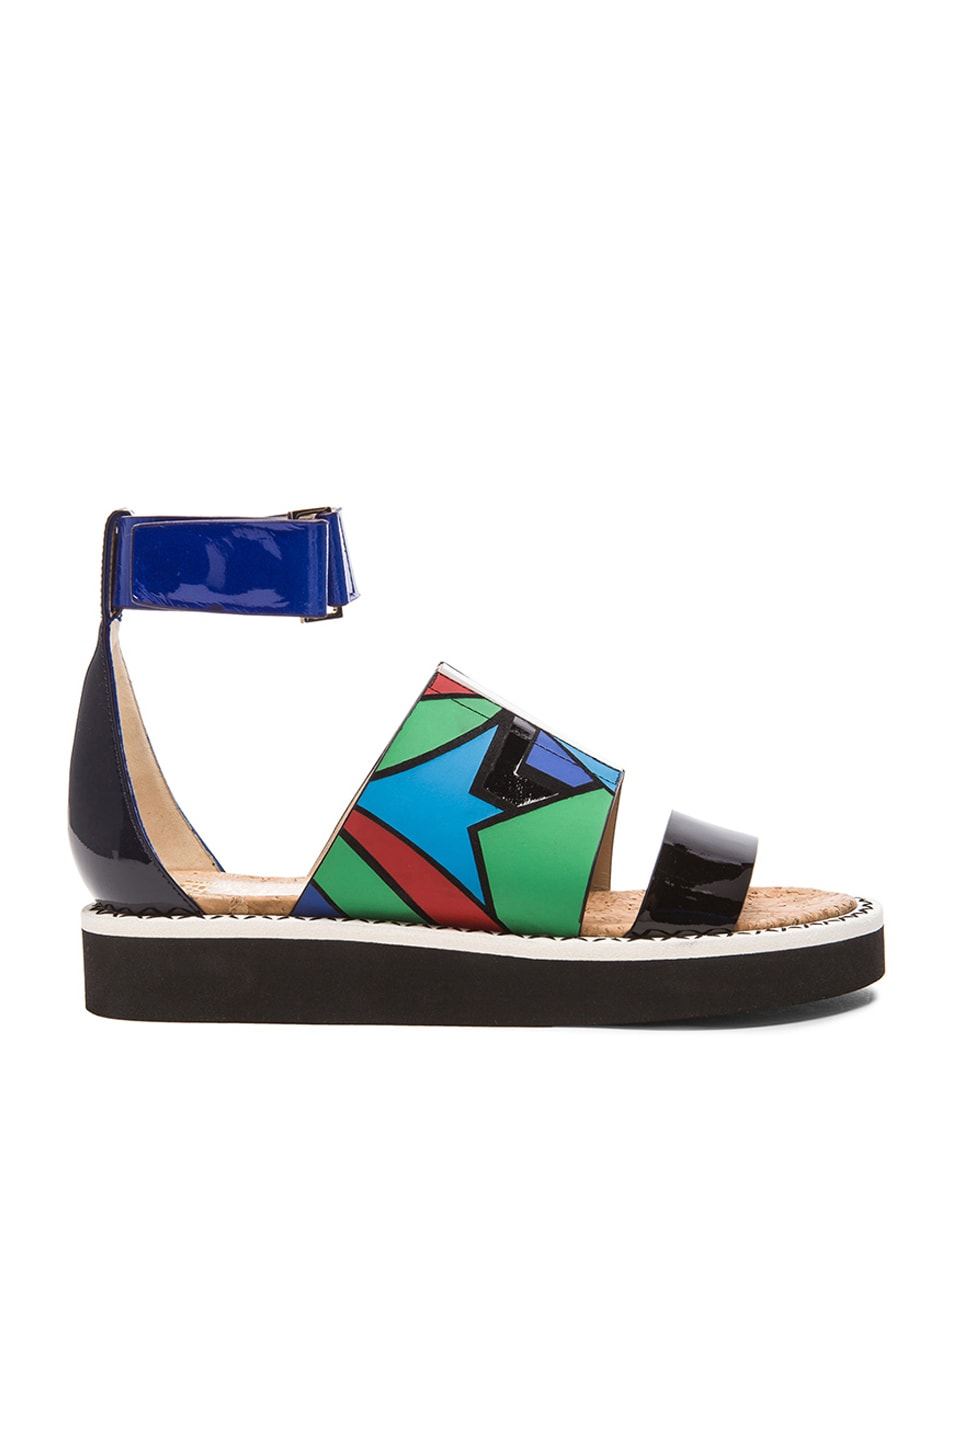 Image 1 of Nicholas Kirkwood x Peter Pilotto Leather Sandals in Blue Printed